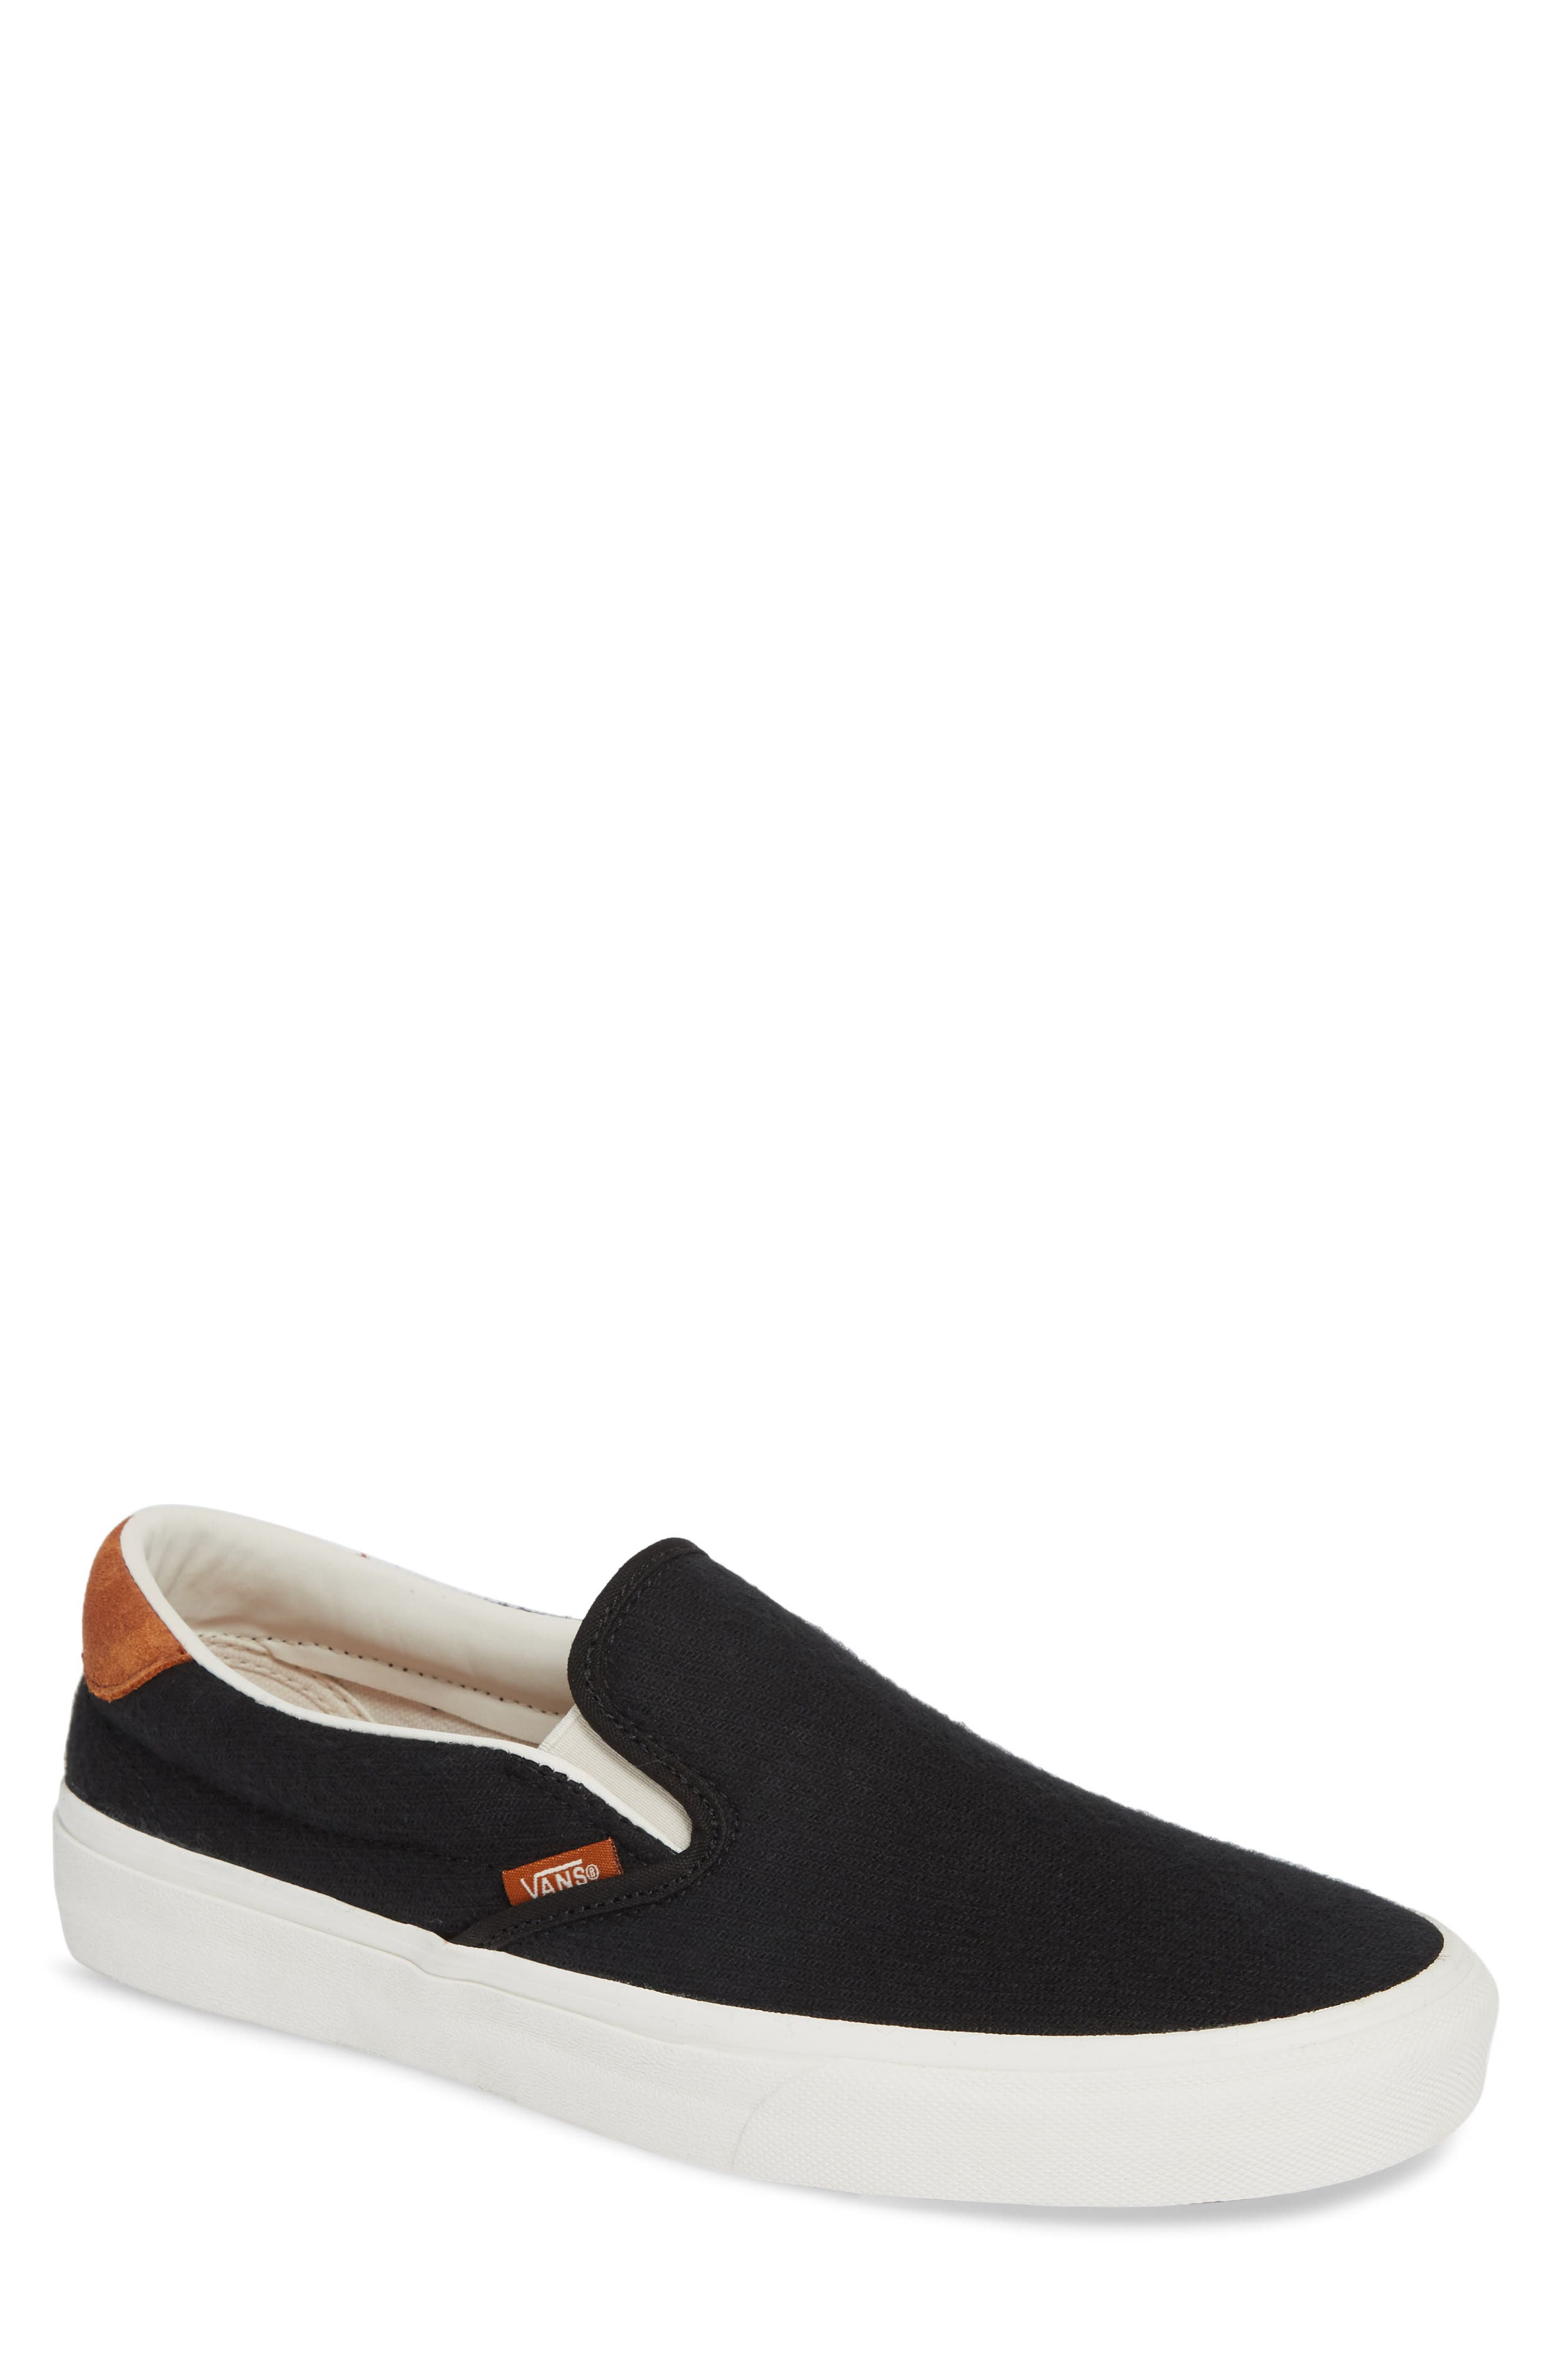 59 Classic Slip-On Sneaker,                         Main,                         color, BLACK FLANNEL SUEDE